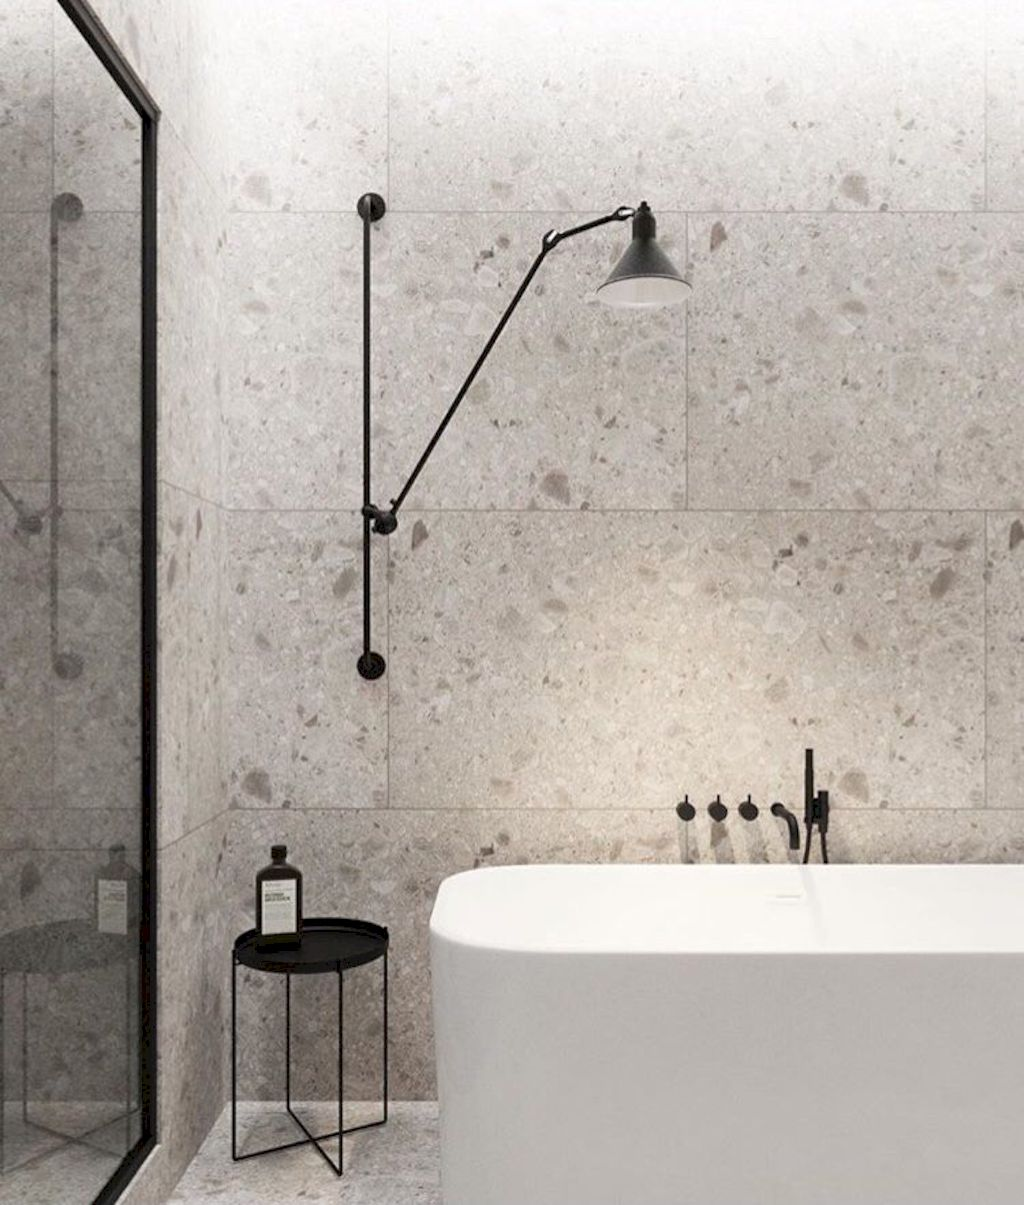 Creative bathroom updates mixing modern trend with simple 60s terrazzo style giving a brilliant contemporary balance Image 22